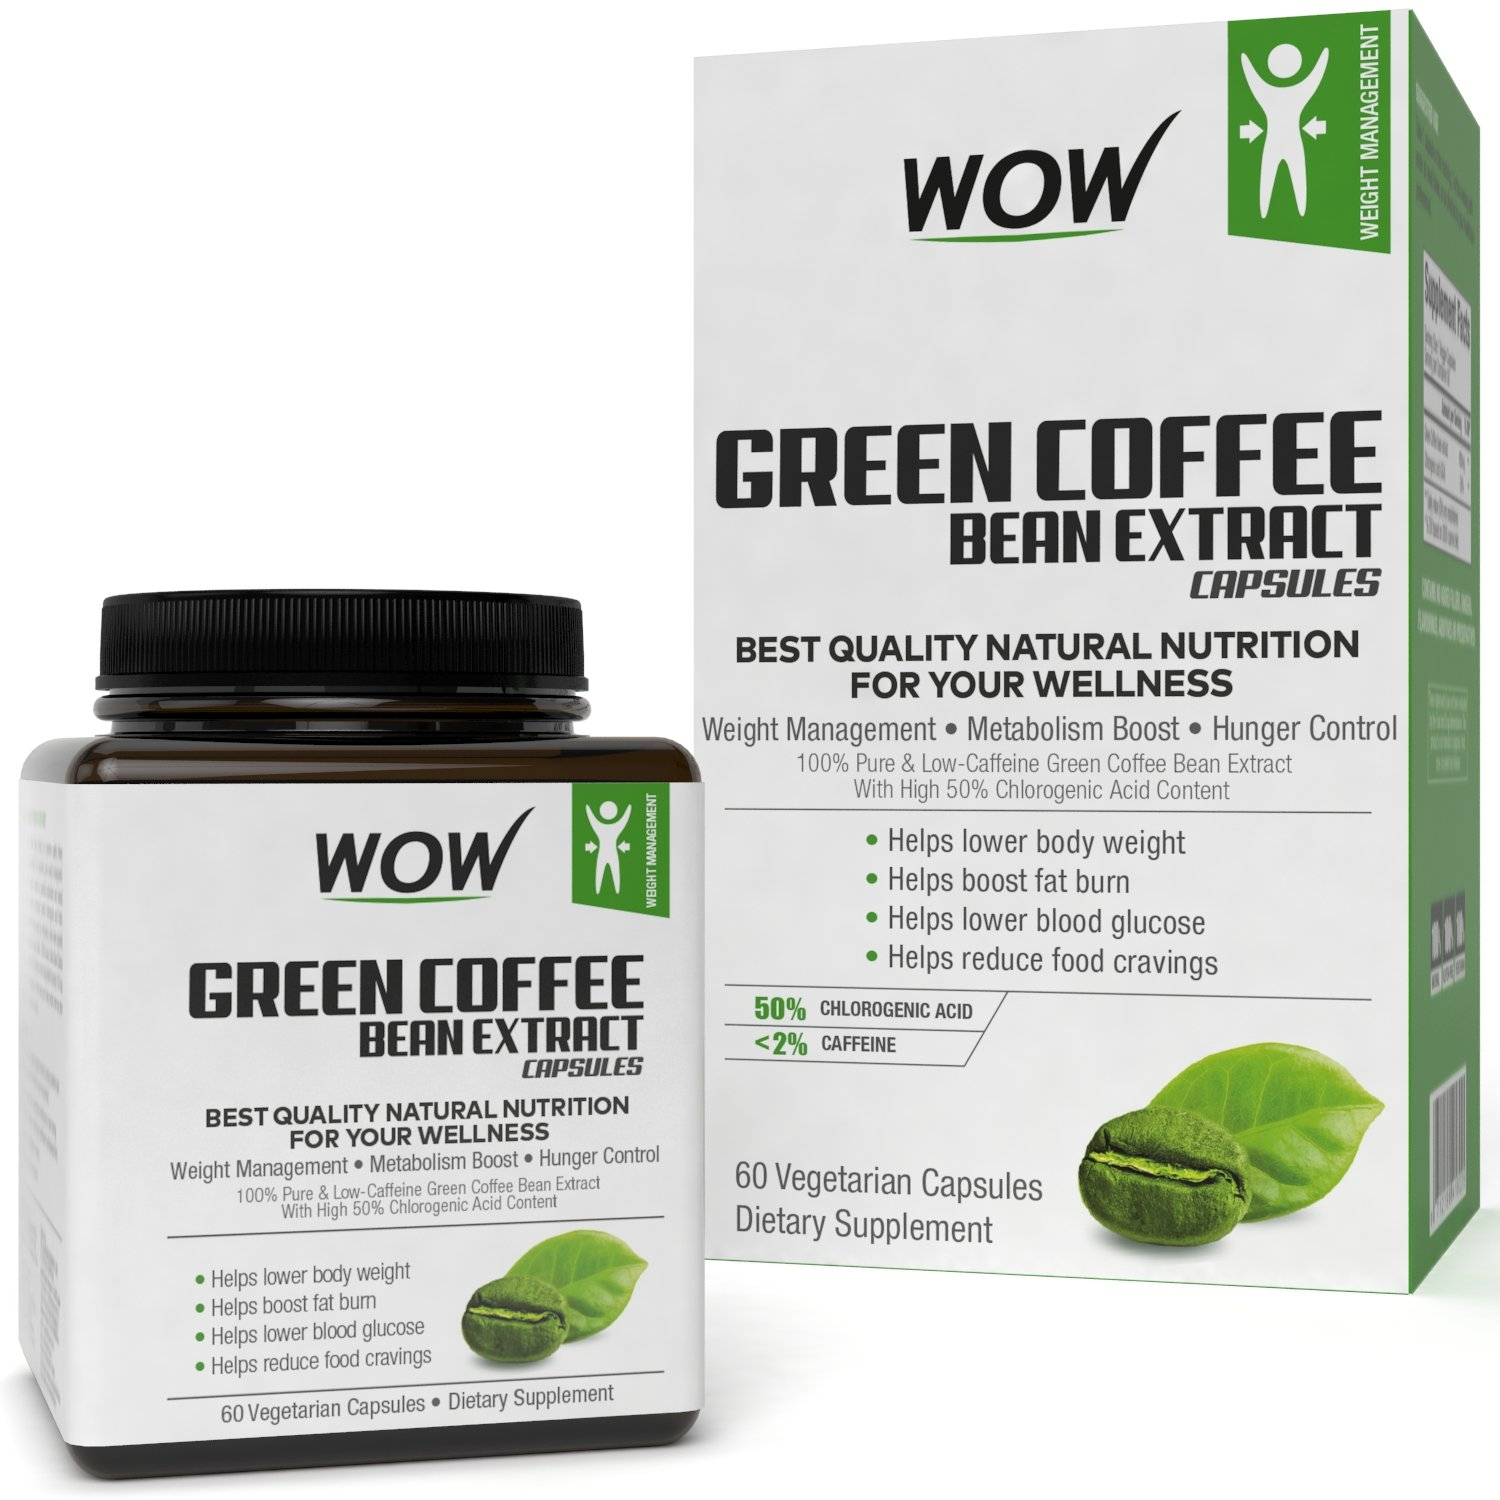 top-green-coffee-brands-india-WOW_Green_Coffee_Bean_Extract